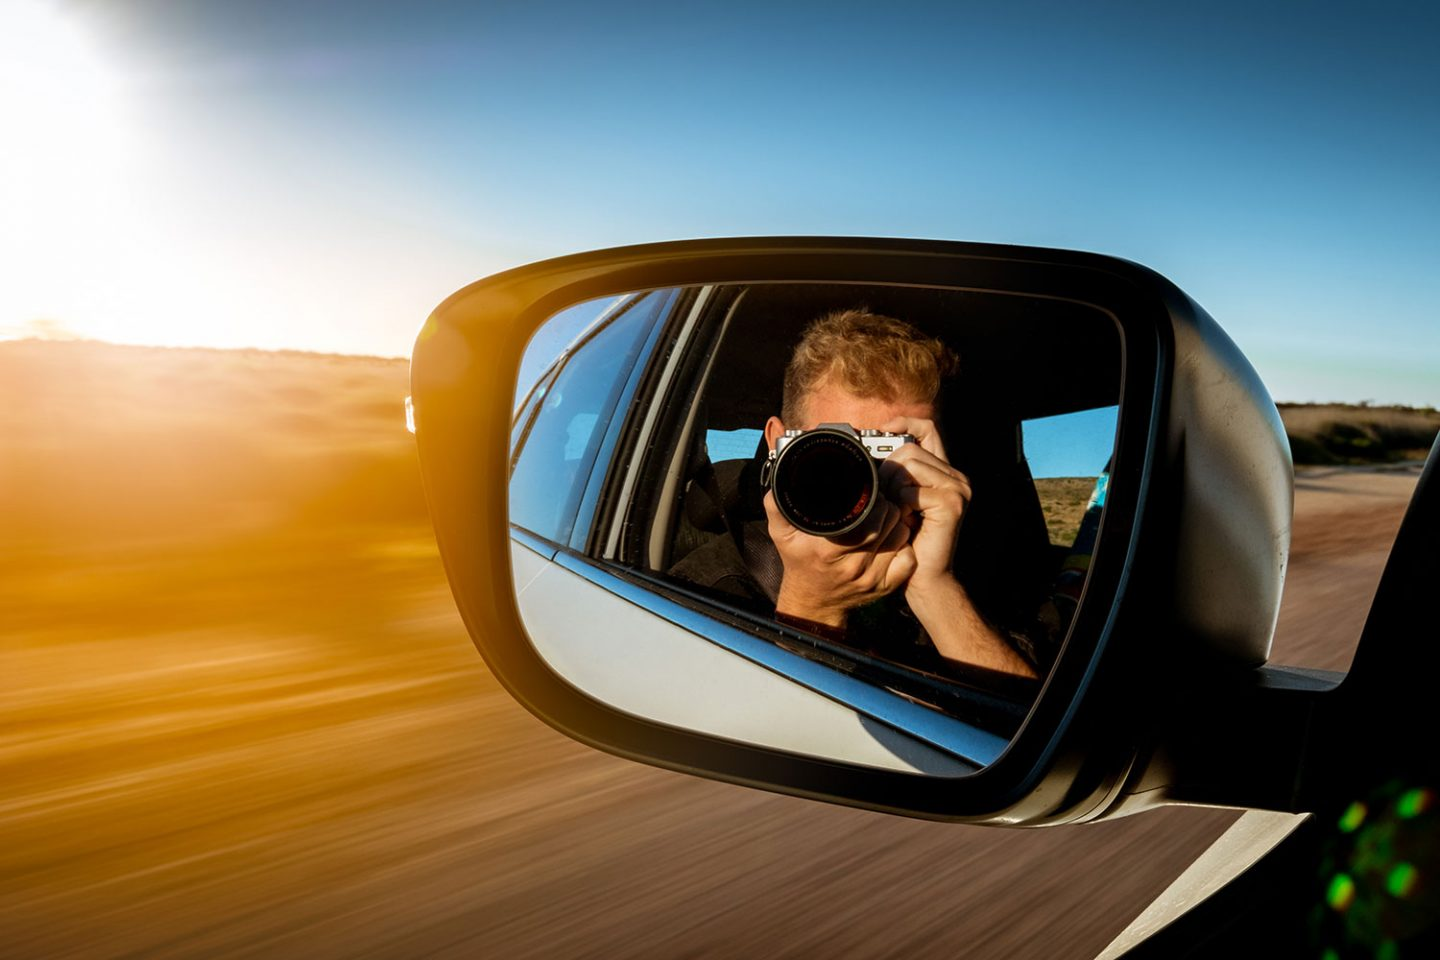 Man taking a photo of himself in a car mirror as car is driving with the warm bright light of the sunset hits the car mirror